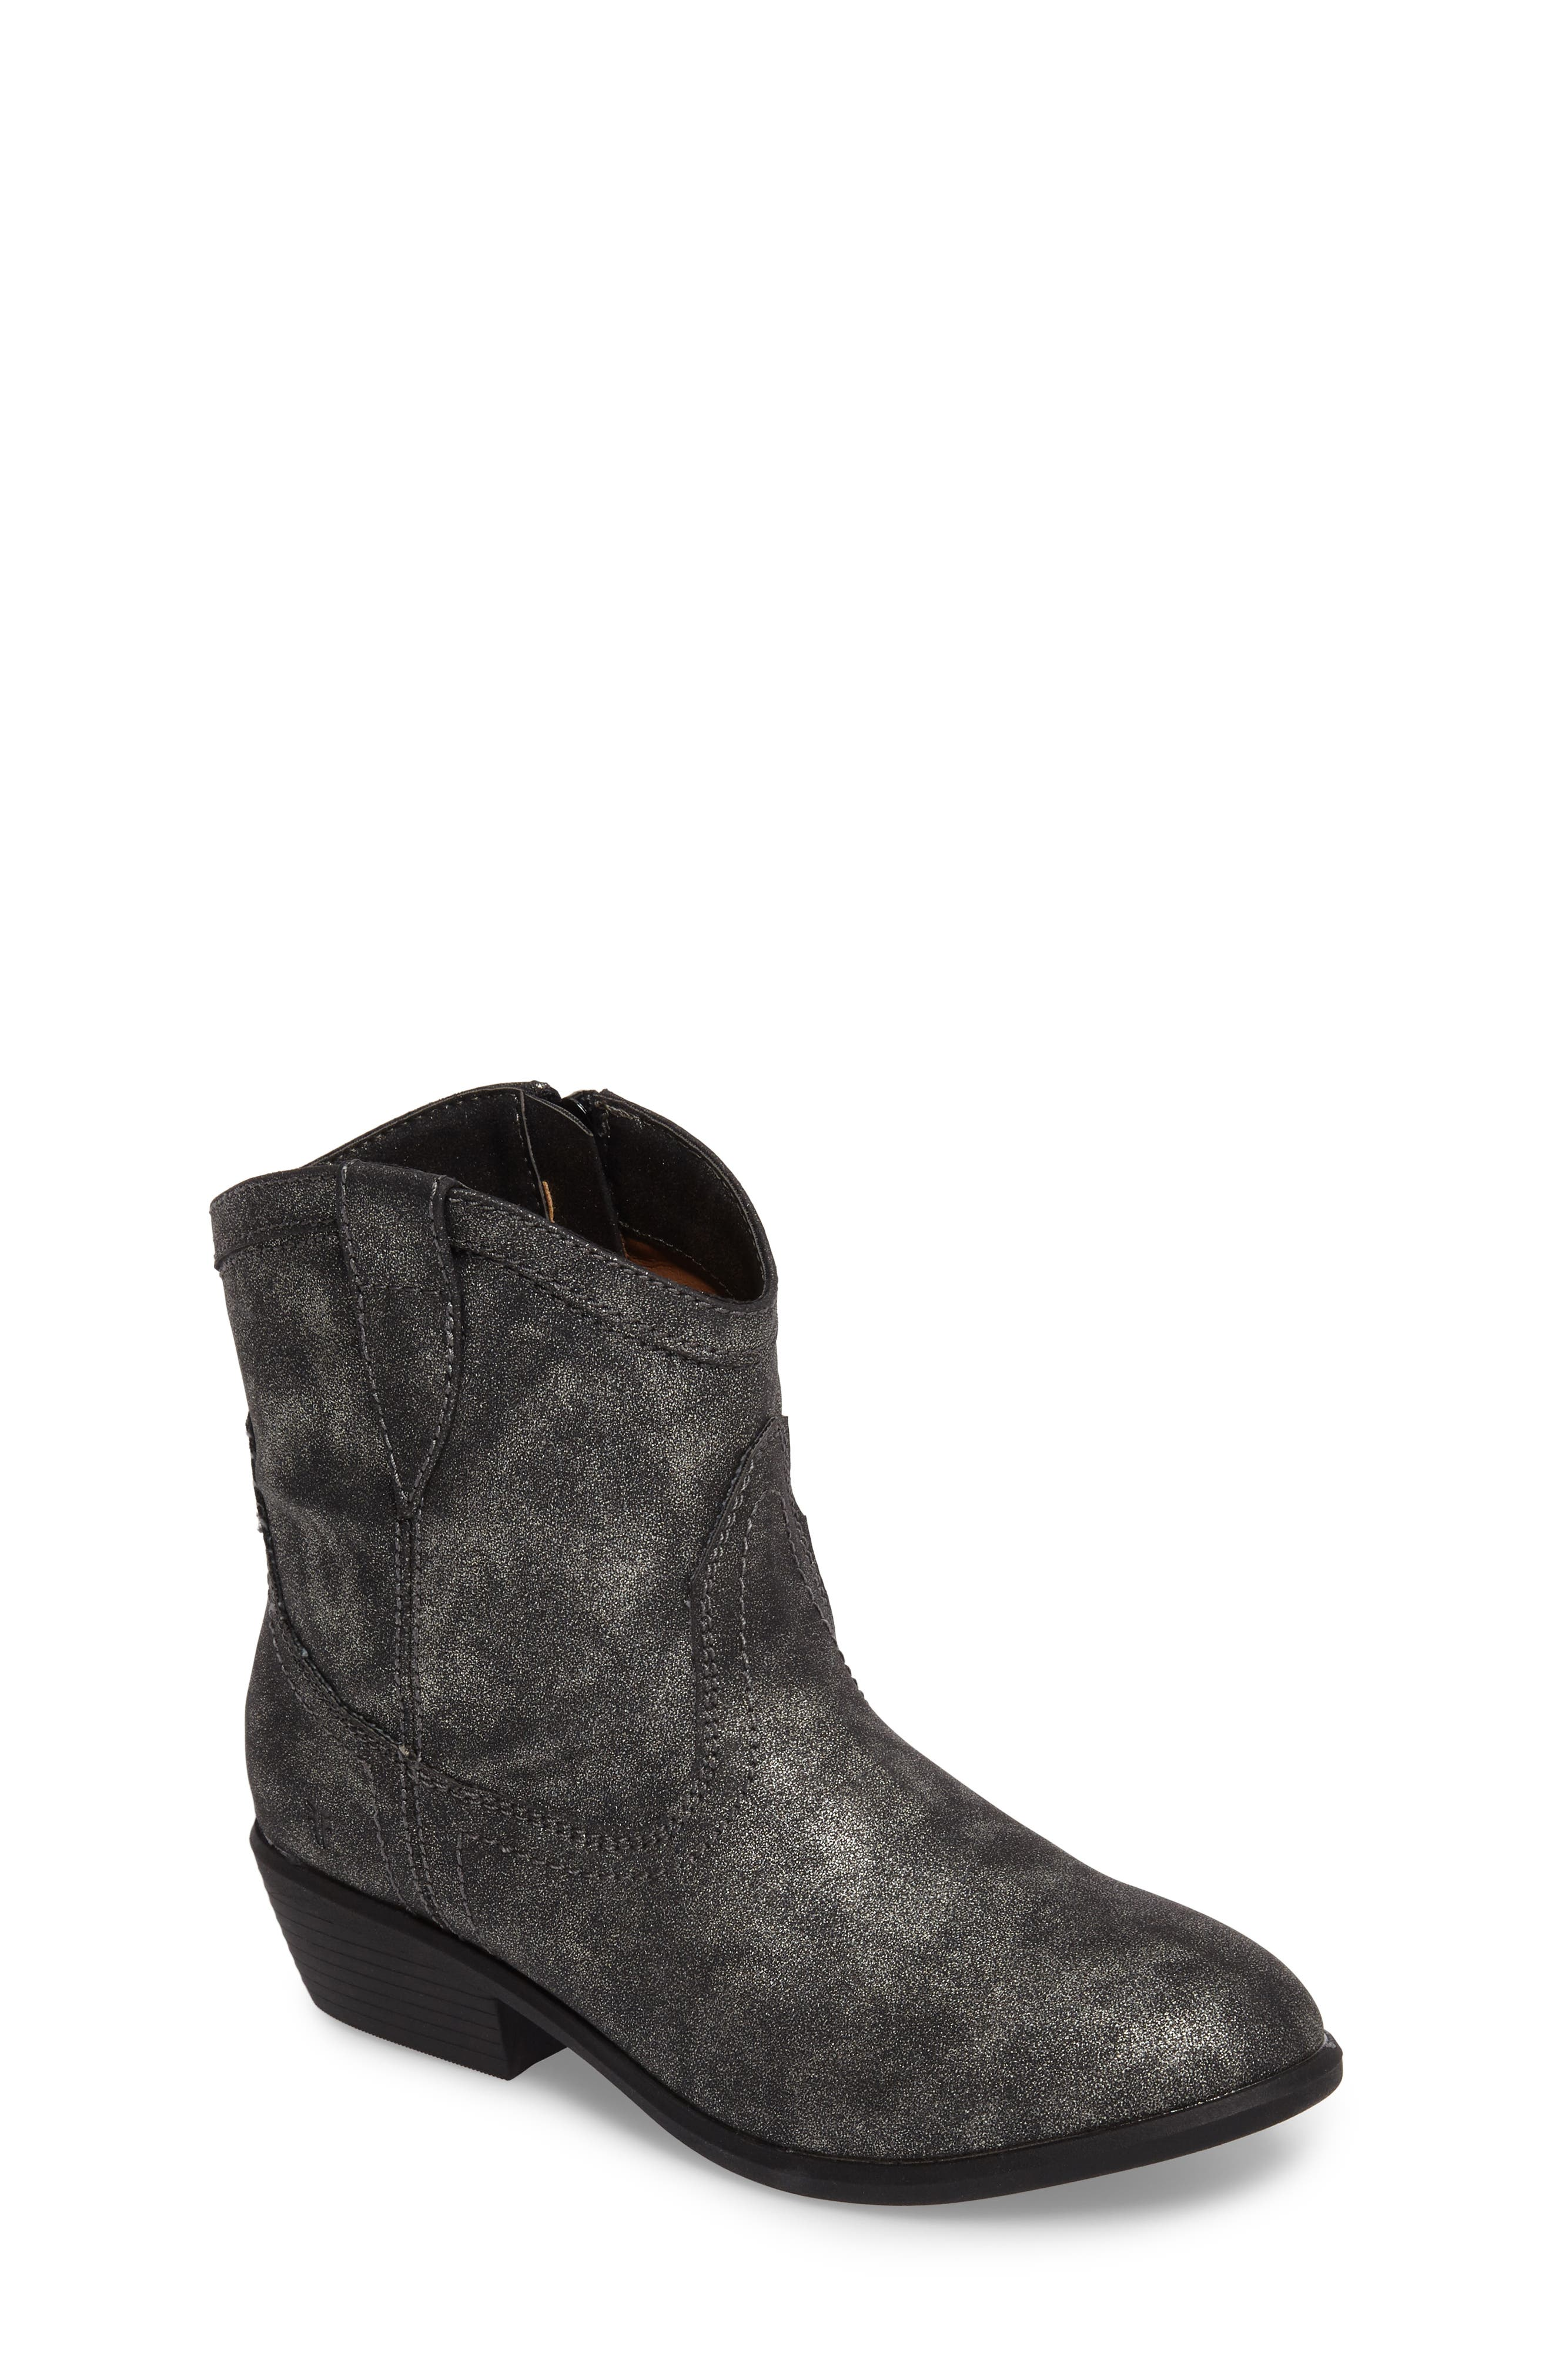 Roper Stitch Boot,                         Main,                         color, Pewter Metallic